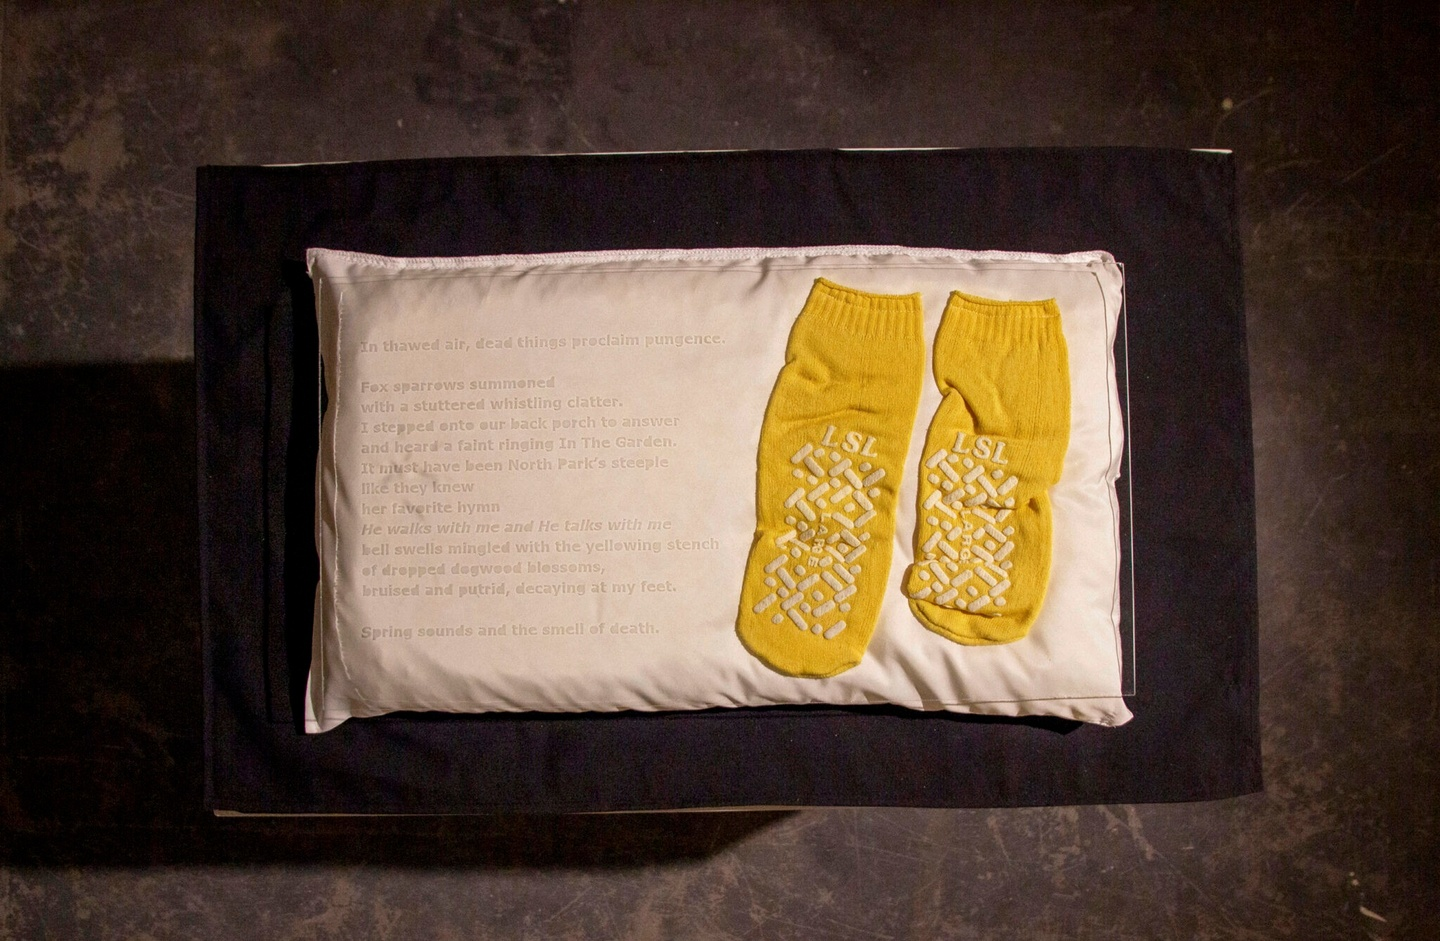 Sculpture of etched glass laid over a white pillow with writing on it and a pair of dark yellow, worn socks.